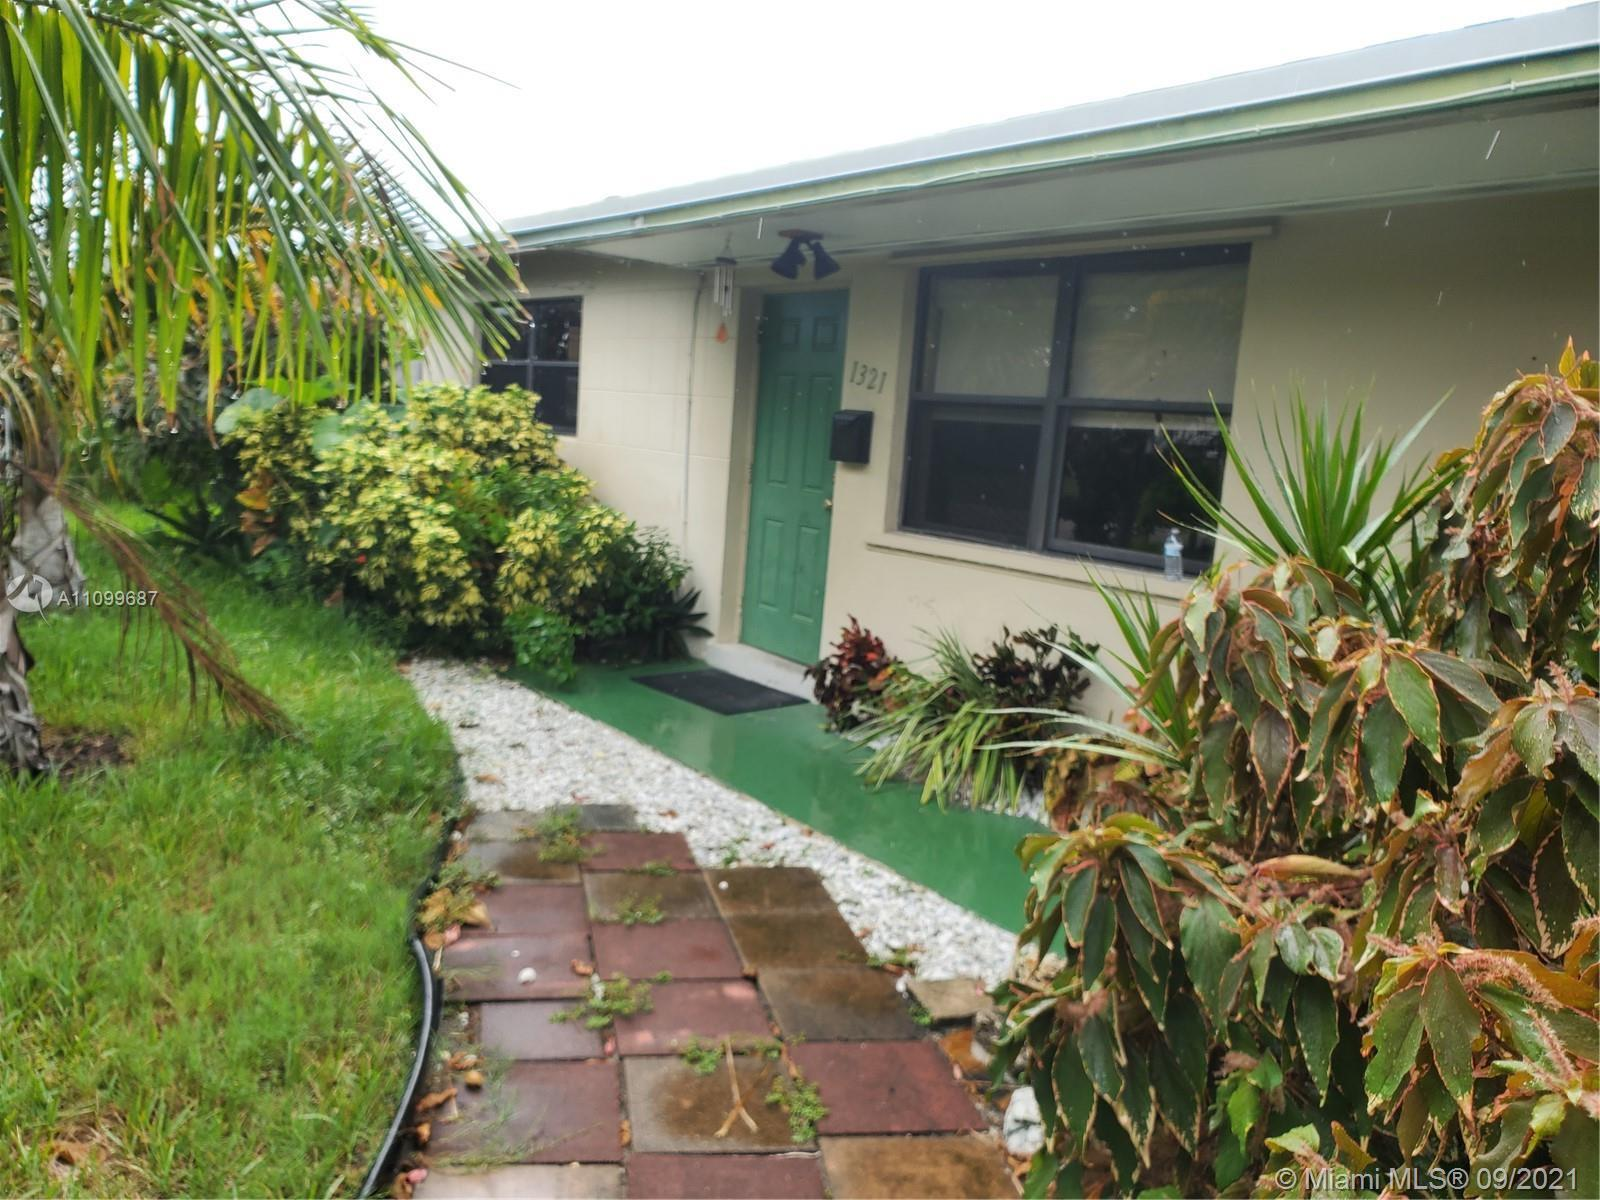 Spacious split bedroom plan home offers plenty of space for the family. This home offers a living ro